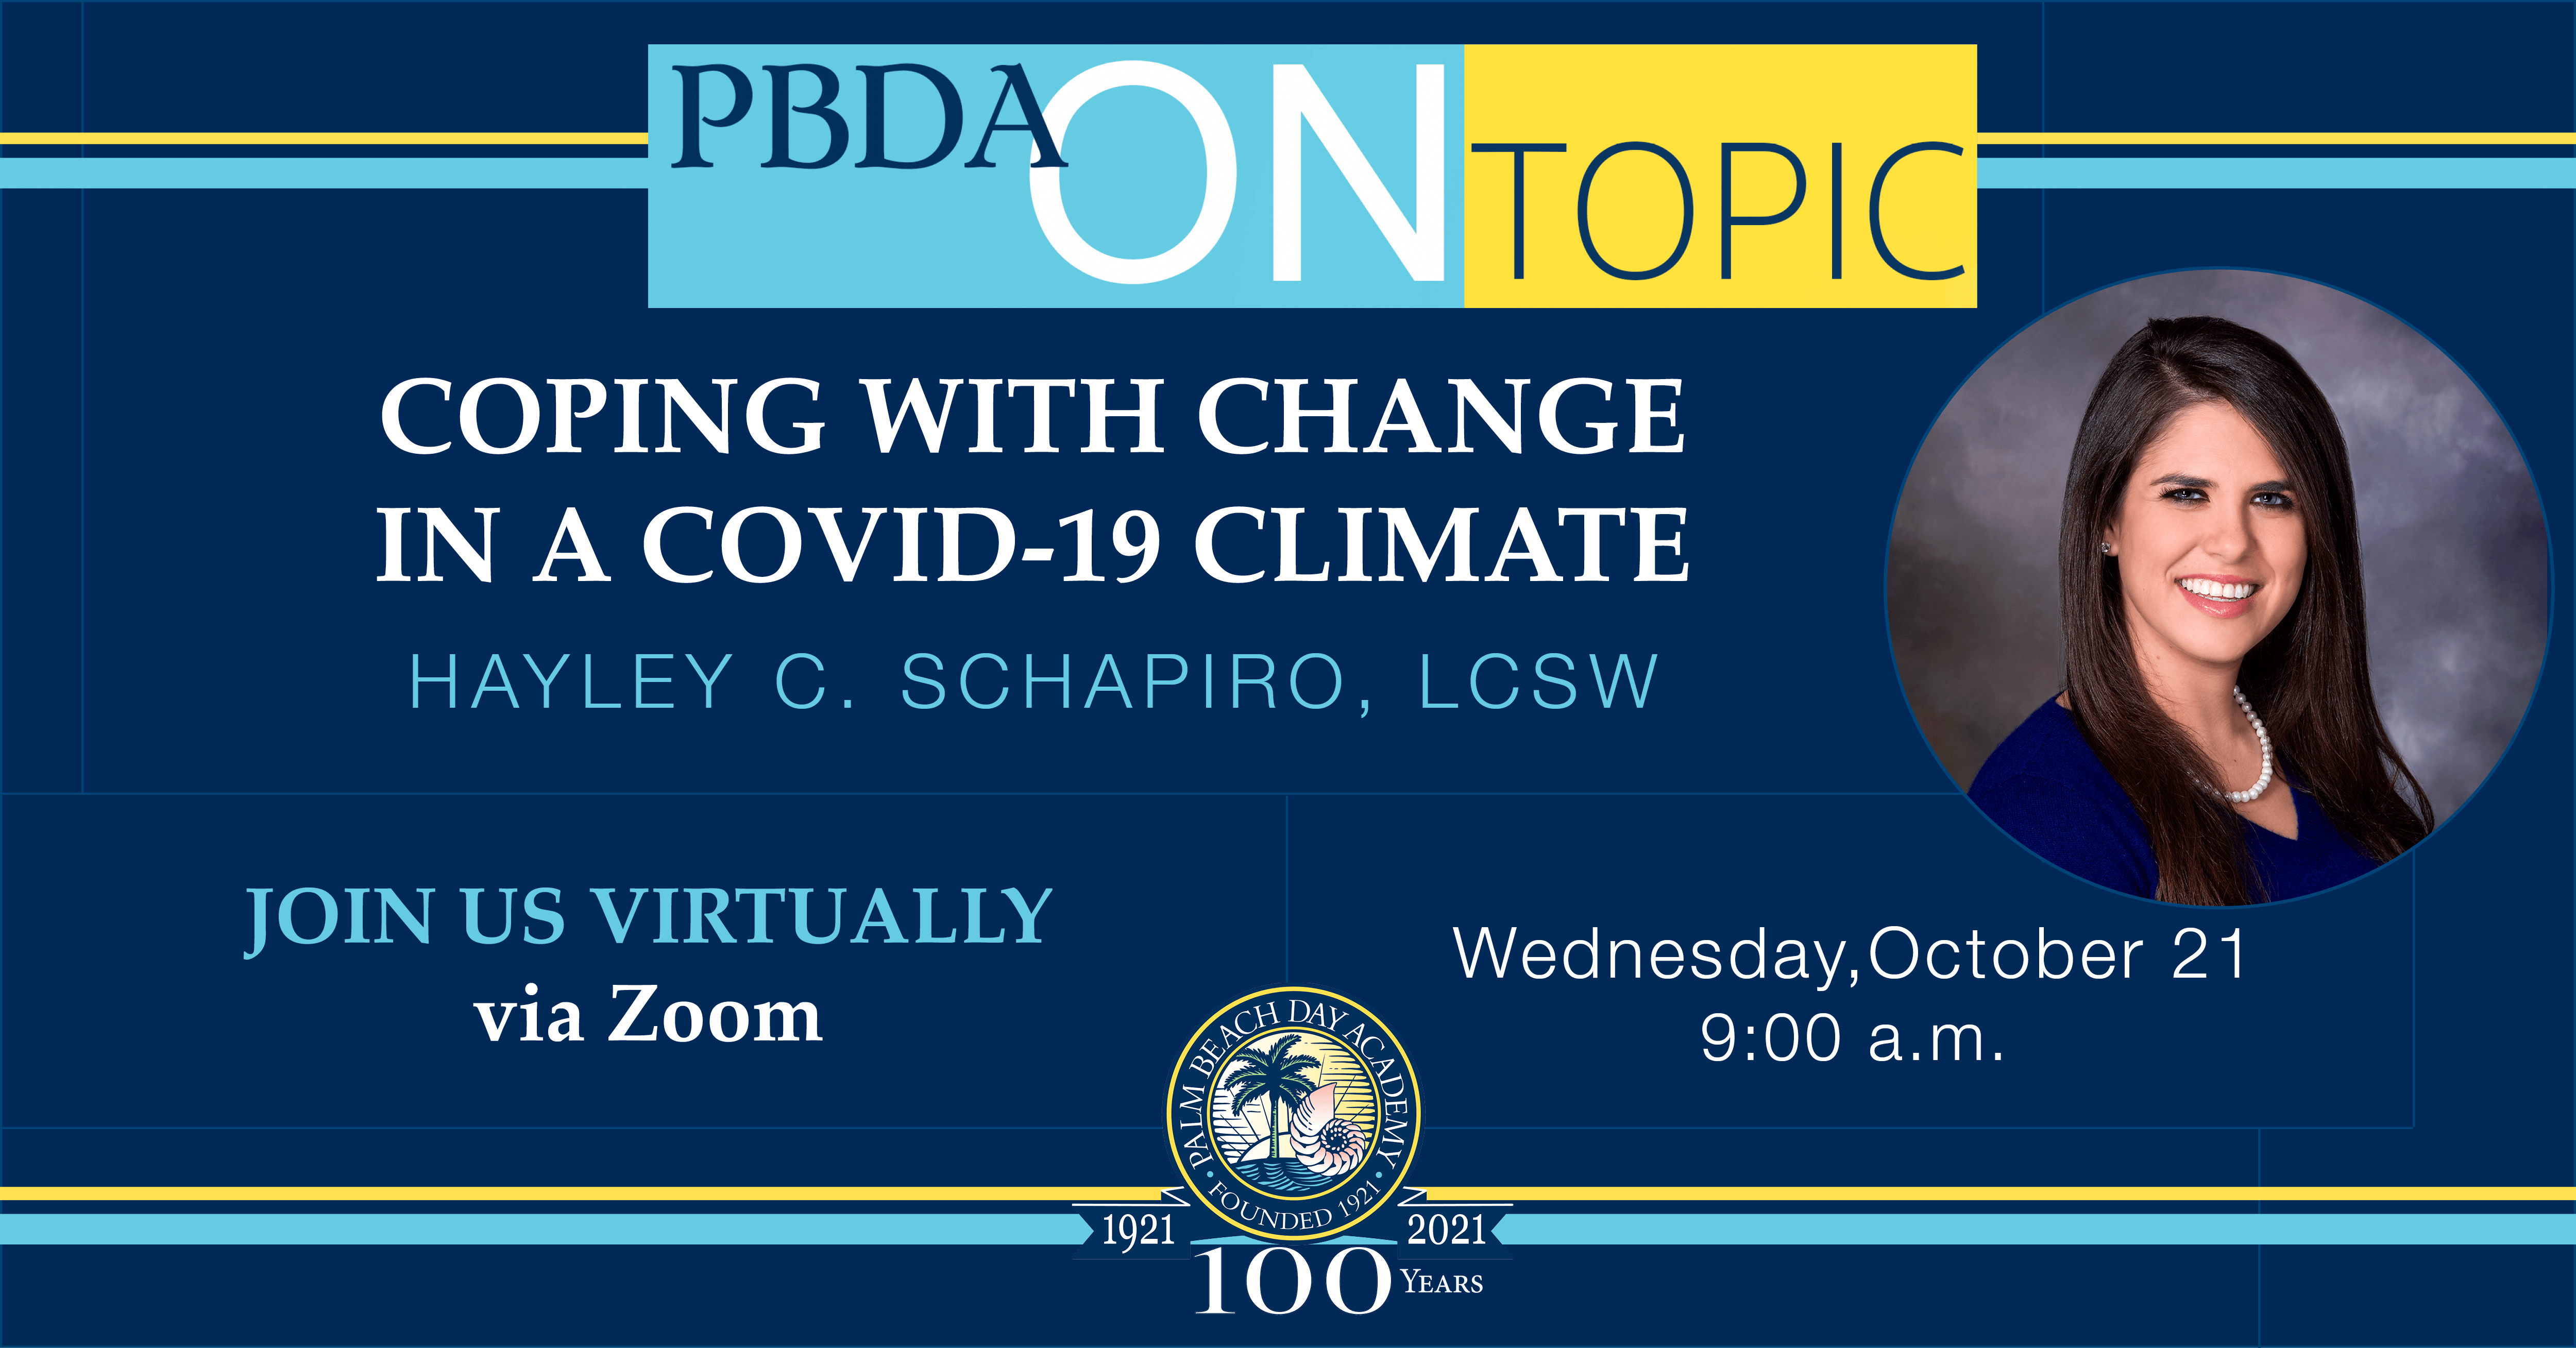 PBDA On Topic Coping with Change in a COVID-19 Climate Hayley Schapiro